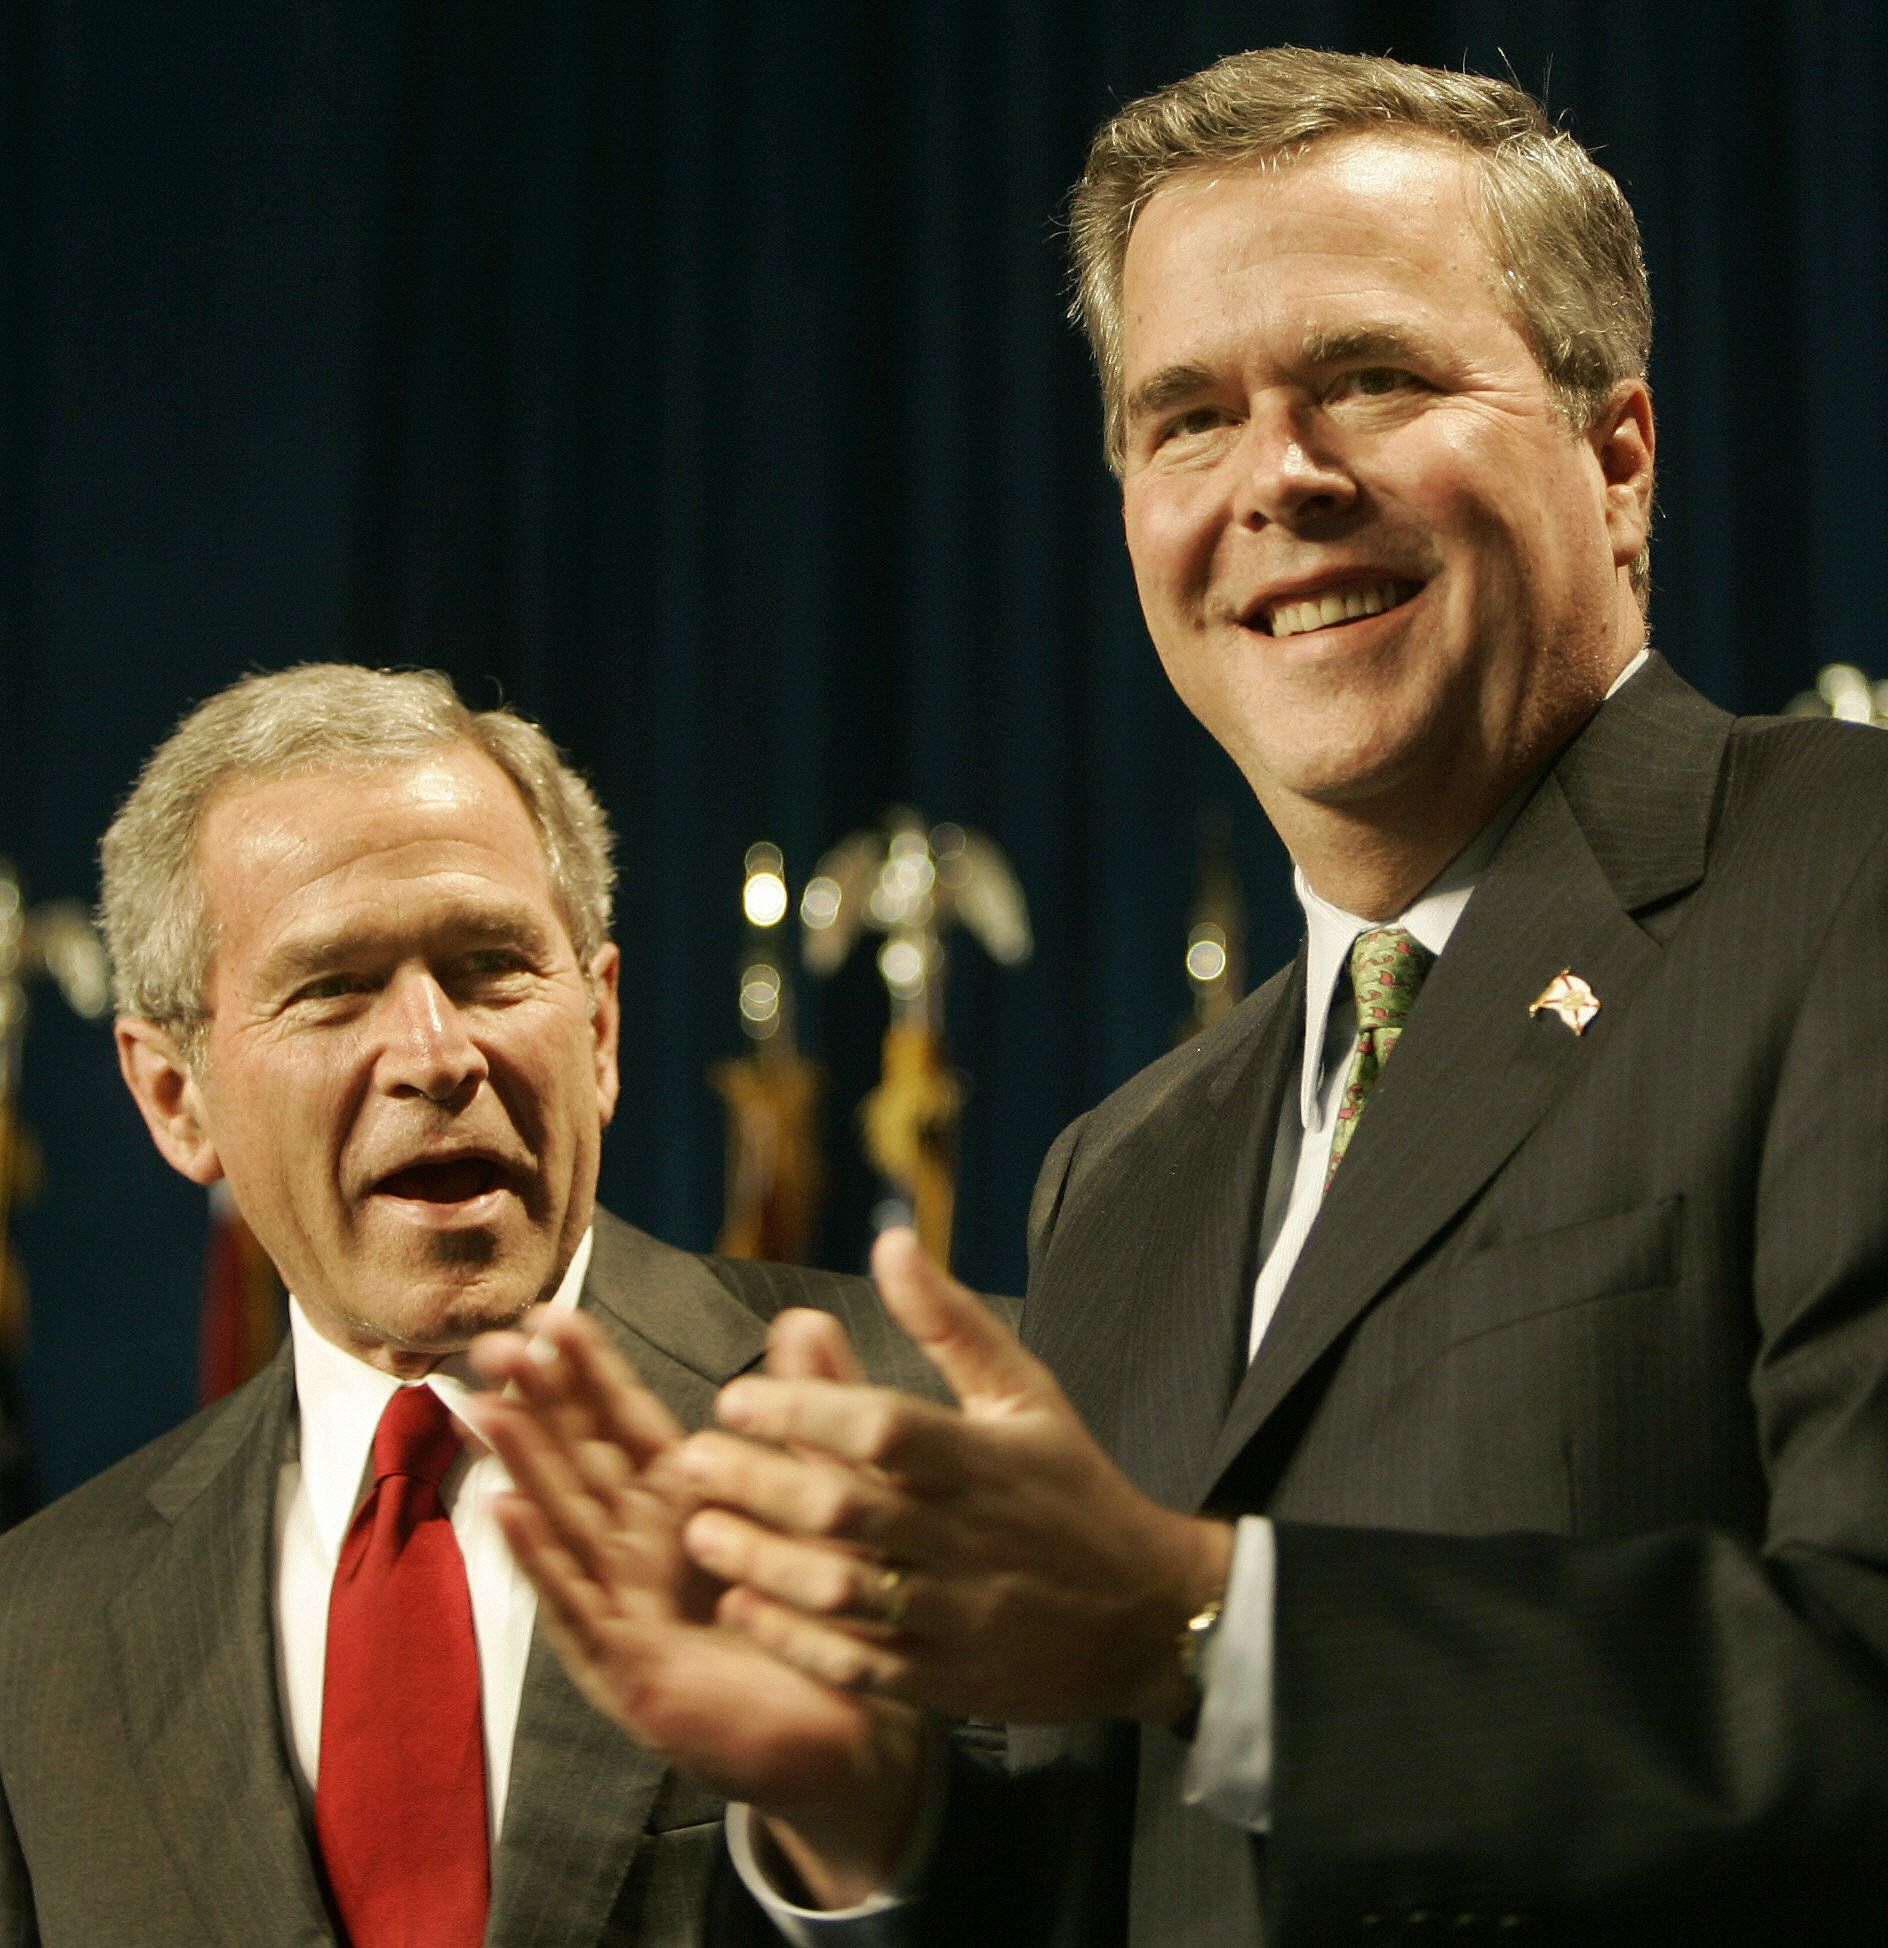 Orlando, UNITED STATES:  US President George W. Bush (L) is introduced by his brother, Florida Governor Jeb Bush (R) before the Republican Party of Florida Dinner 17 February 2006 inside the Walt Disney World's Contemporary Resort in Orlando.    AFP Photo/Paul J. RICHARDS  (Photo credit should read PAUL J.RICHARDS/AFP/Getty Images)